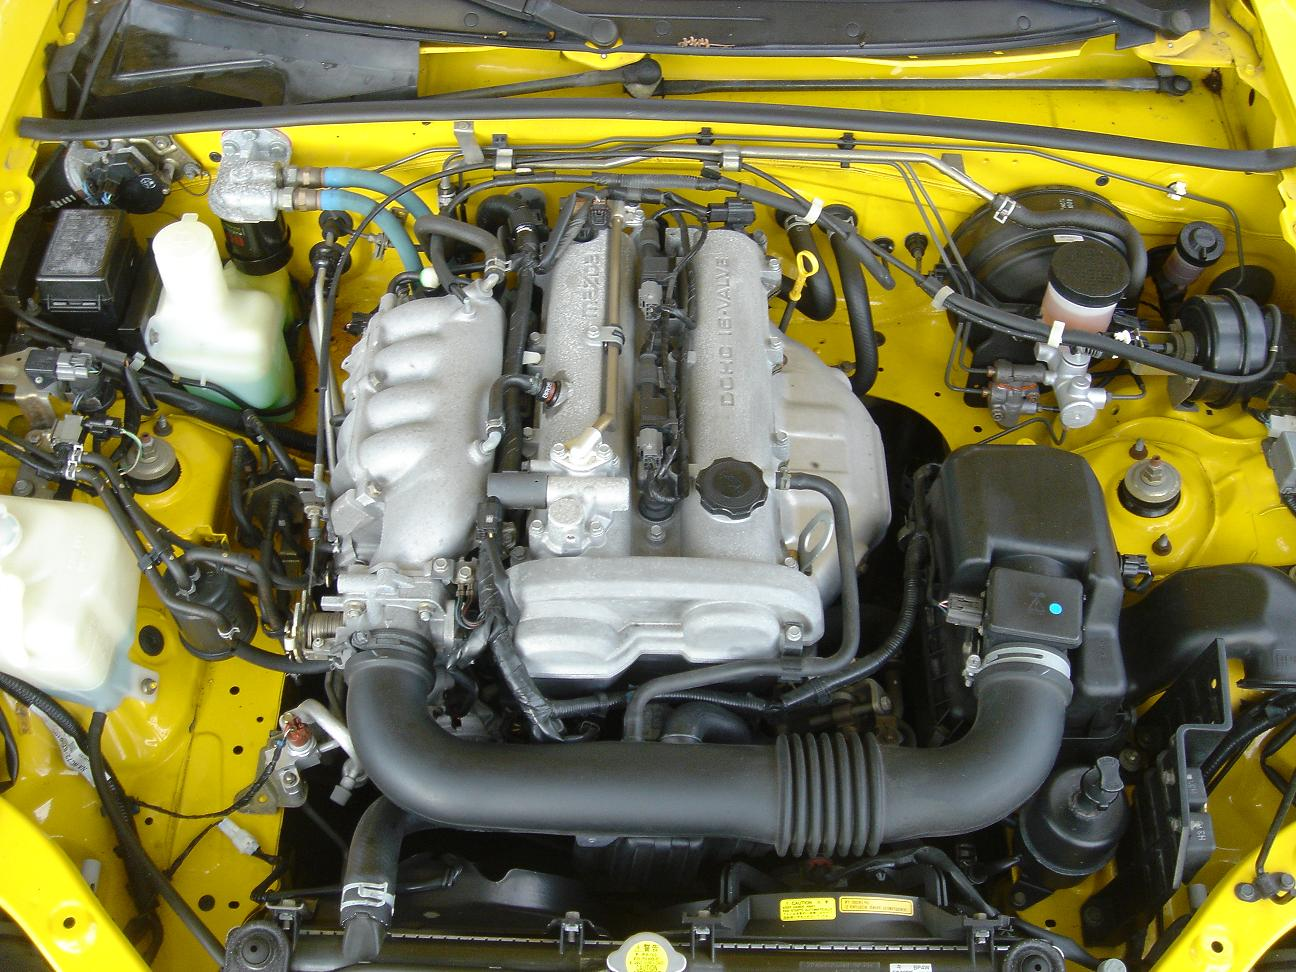 Mazda_MX5_Miata_Engine_Bay_NB